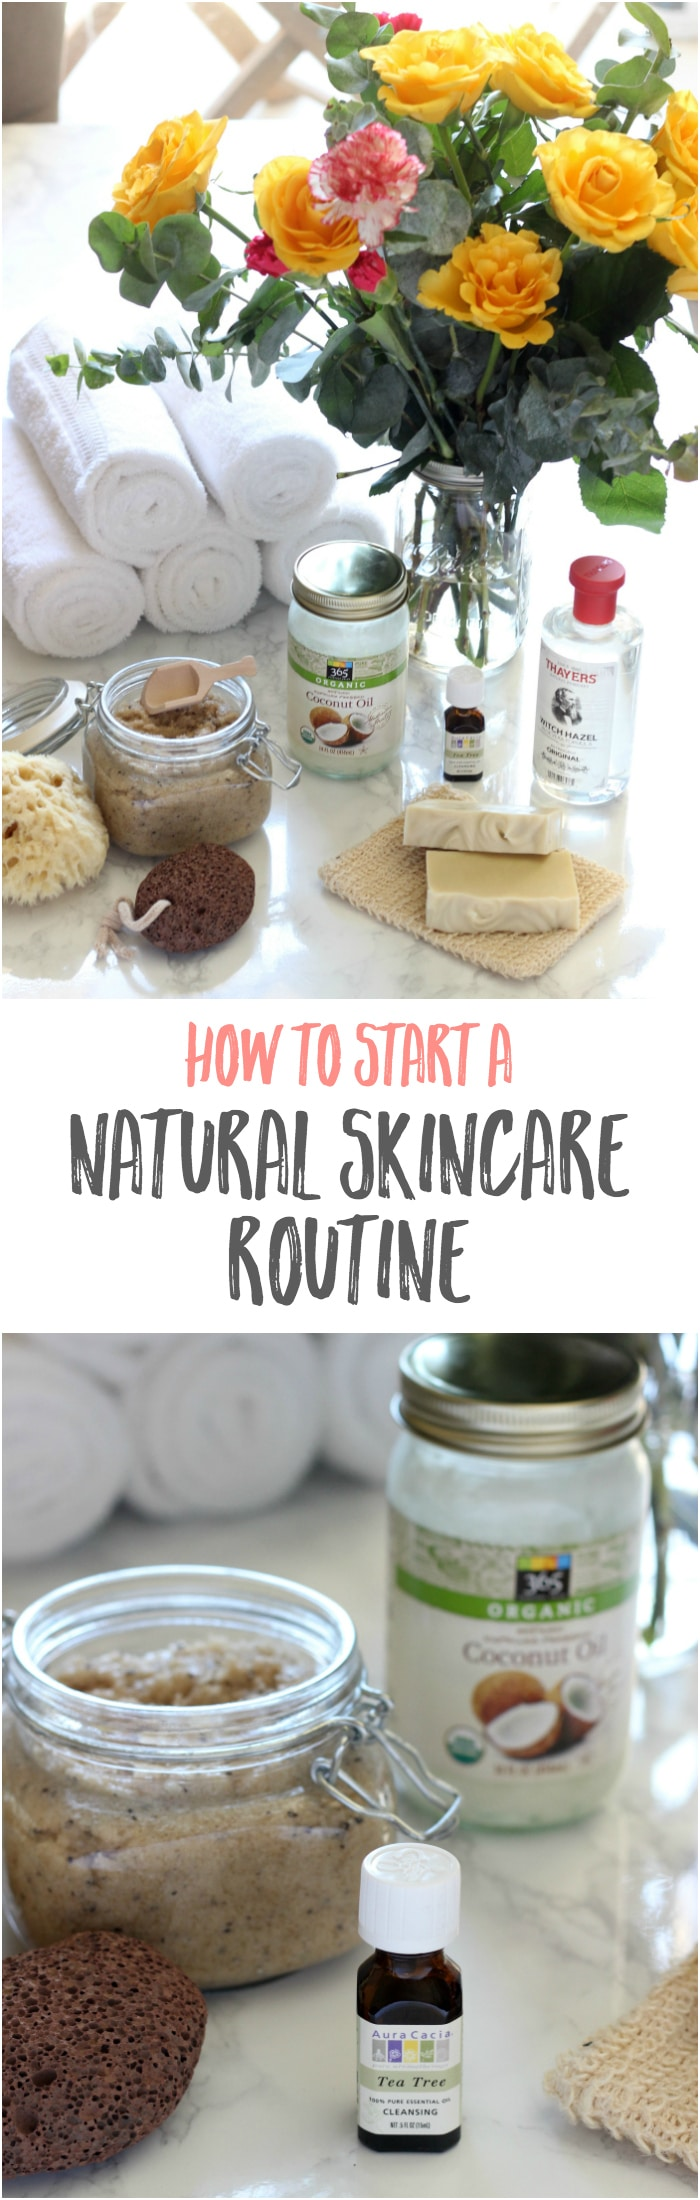 How to Start a Natural Skincare Routine